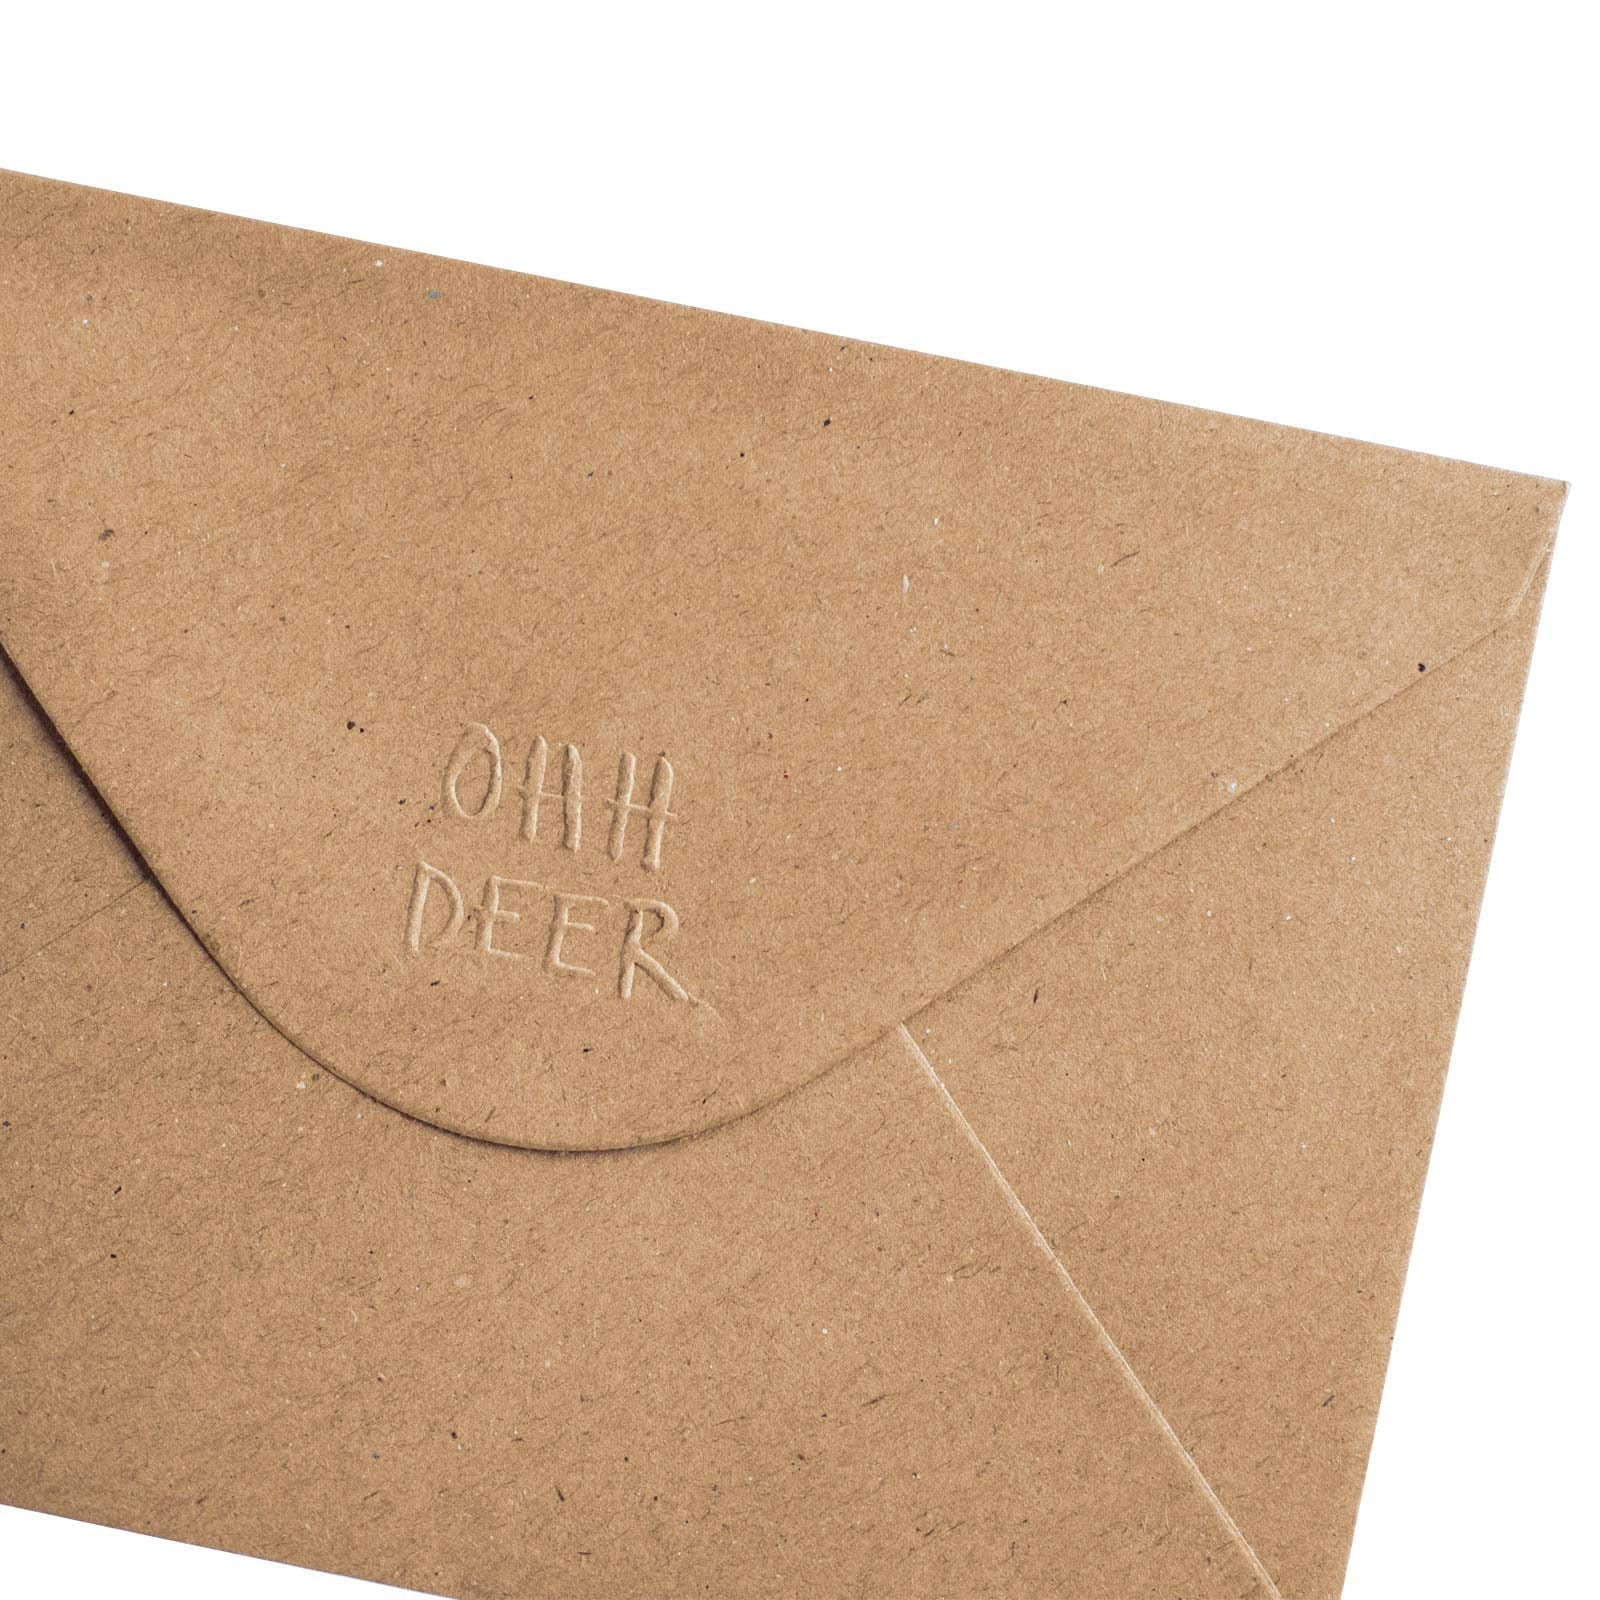 Brown envelope close up of corner with Ohh Deer logo on flap